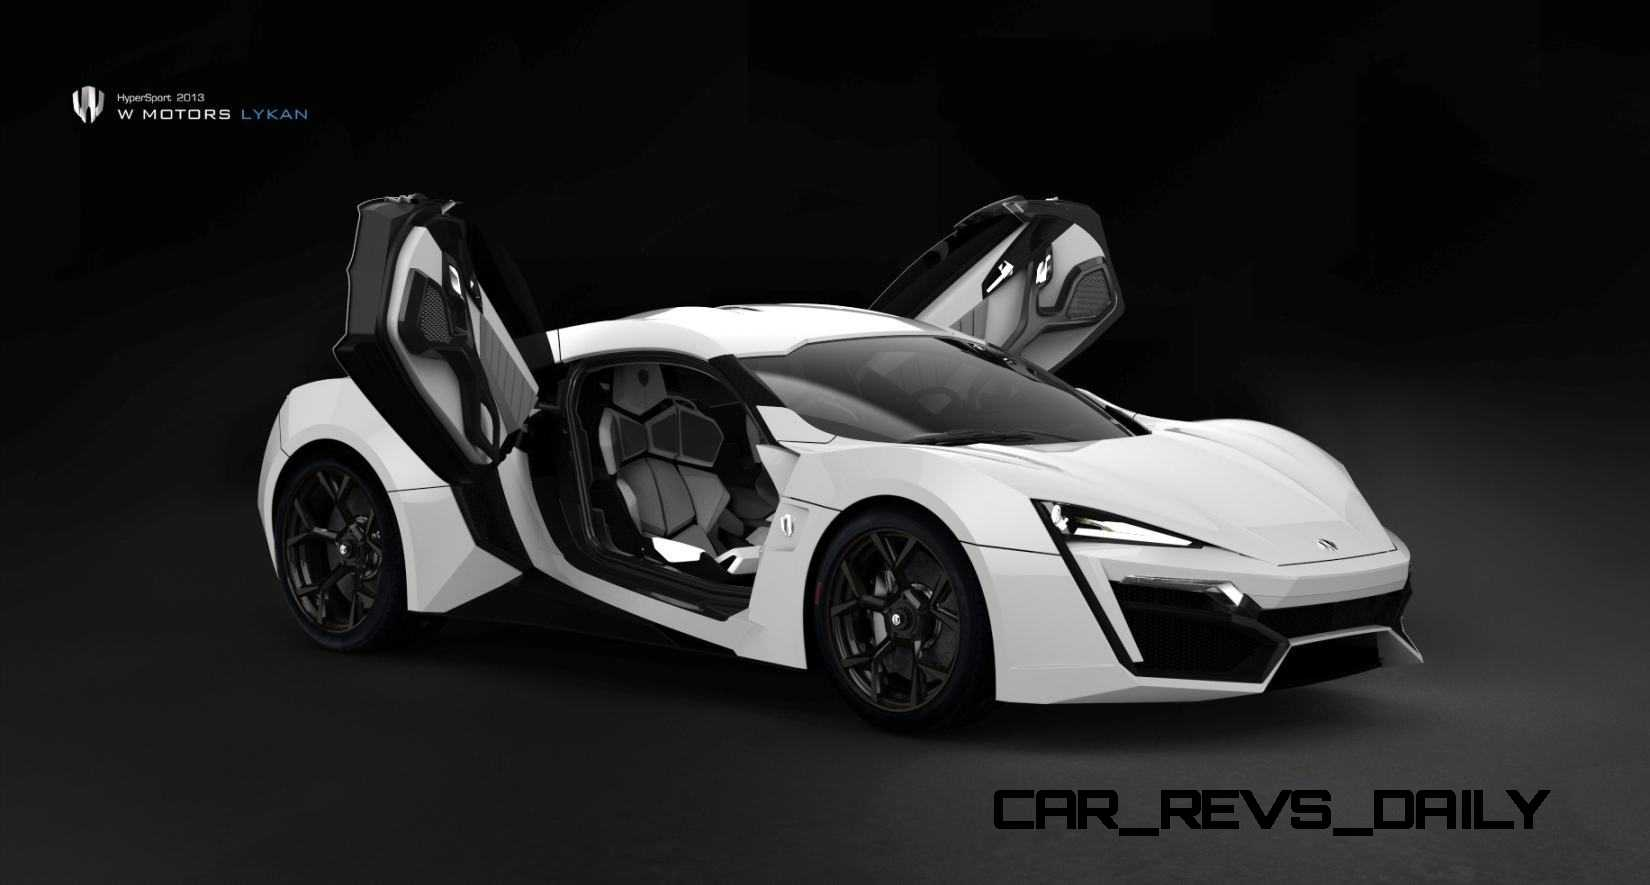 2014 W Motors Lykan Hypersport In 40 Amazing New Wallpapers Including Megalux Interior